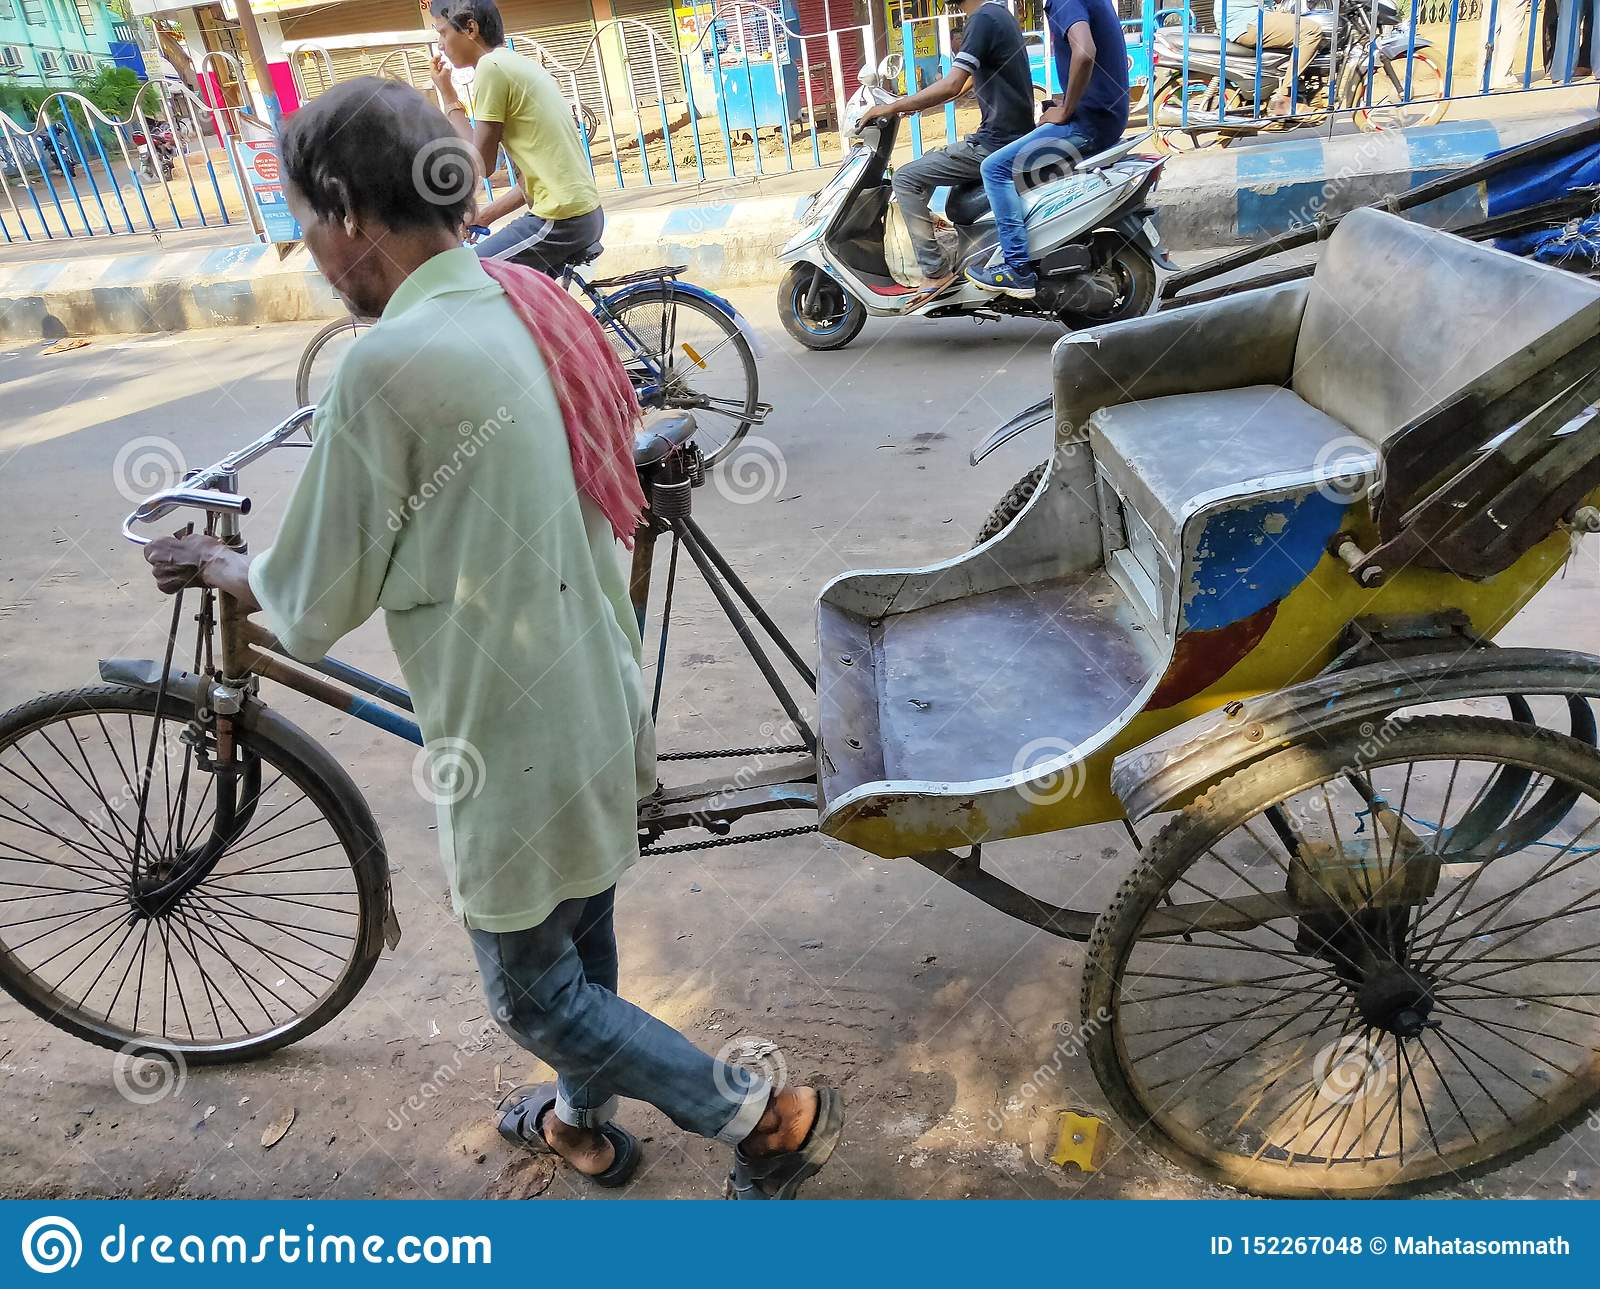 Jhargram, West Bengal, India - May 05, 2019: A hand pulled rickshwa was pulled by someone on a busy road of a city in West Bengal